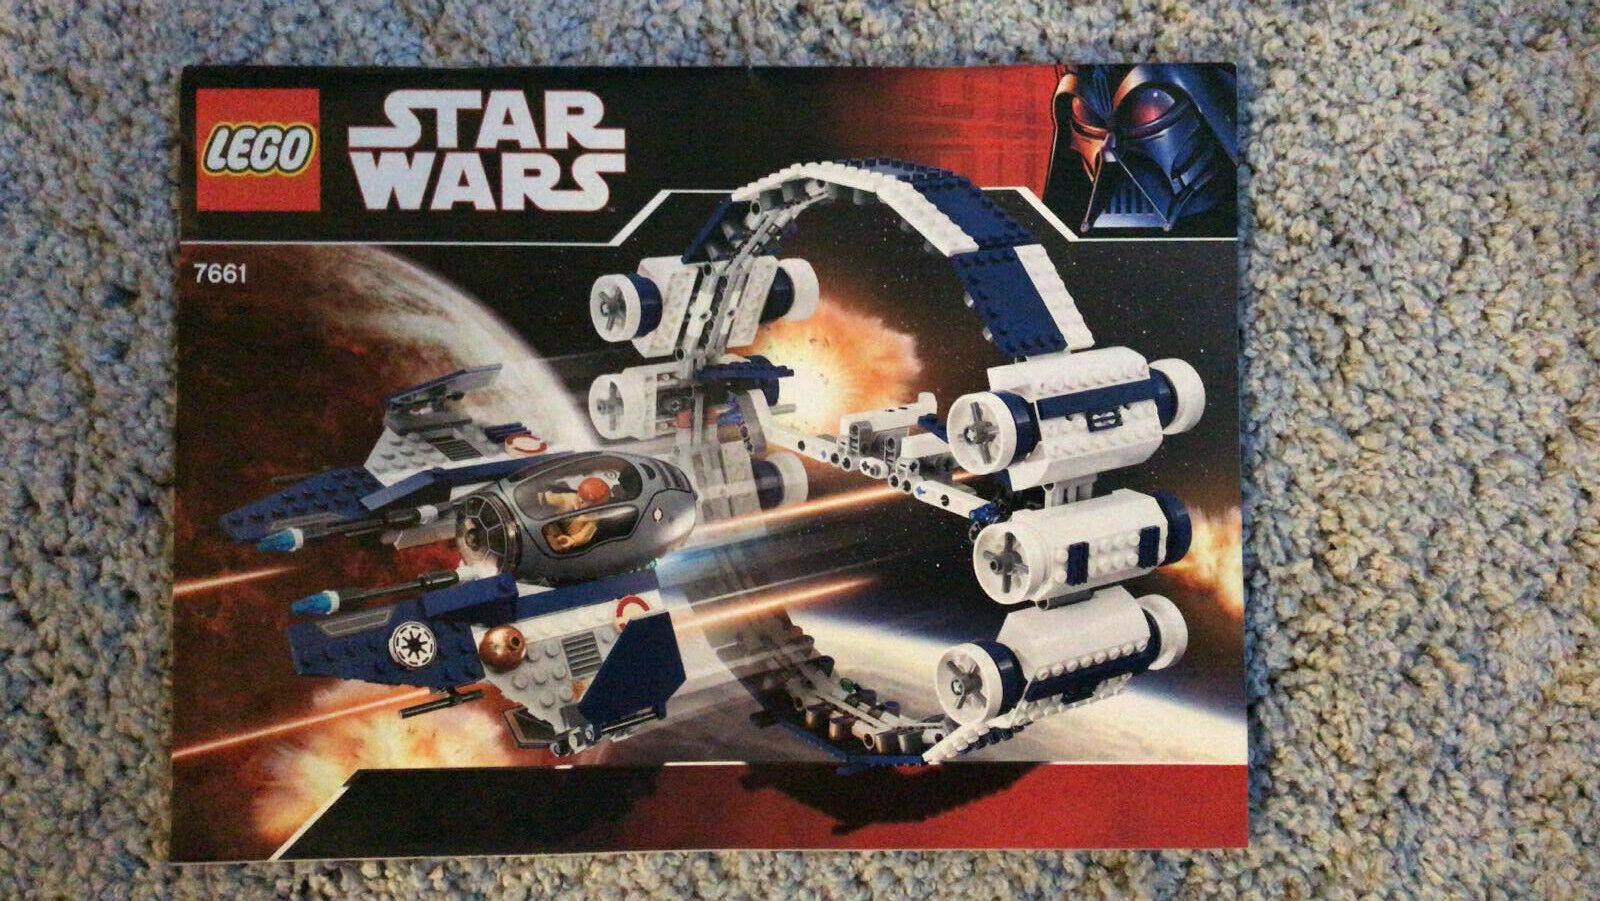 LEGO Star Wars Jedi Starfighter with Hyperdrive Booster Ring (7661)